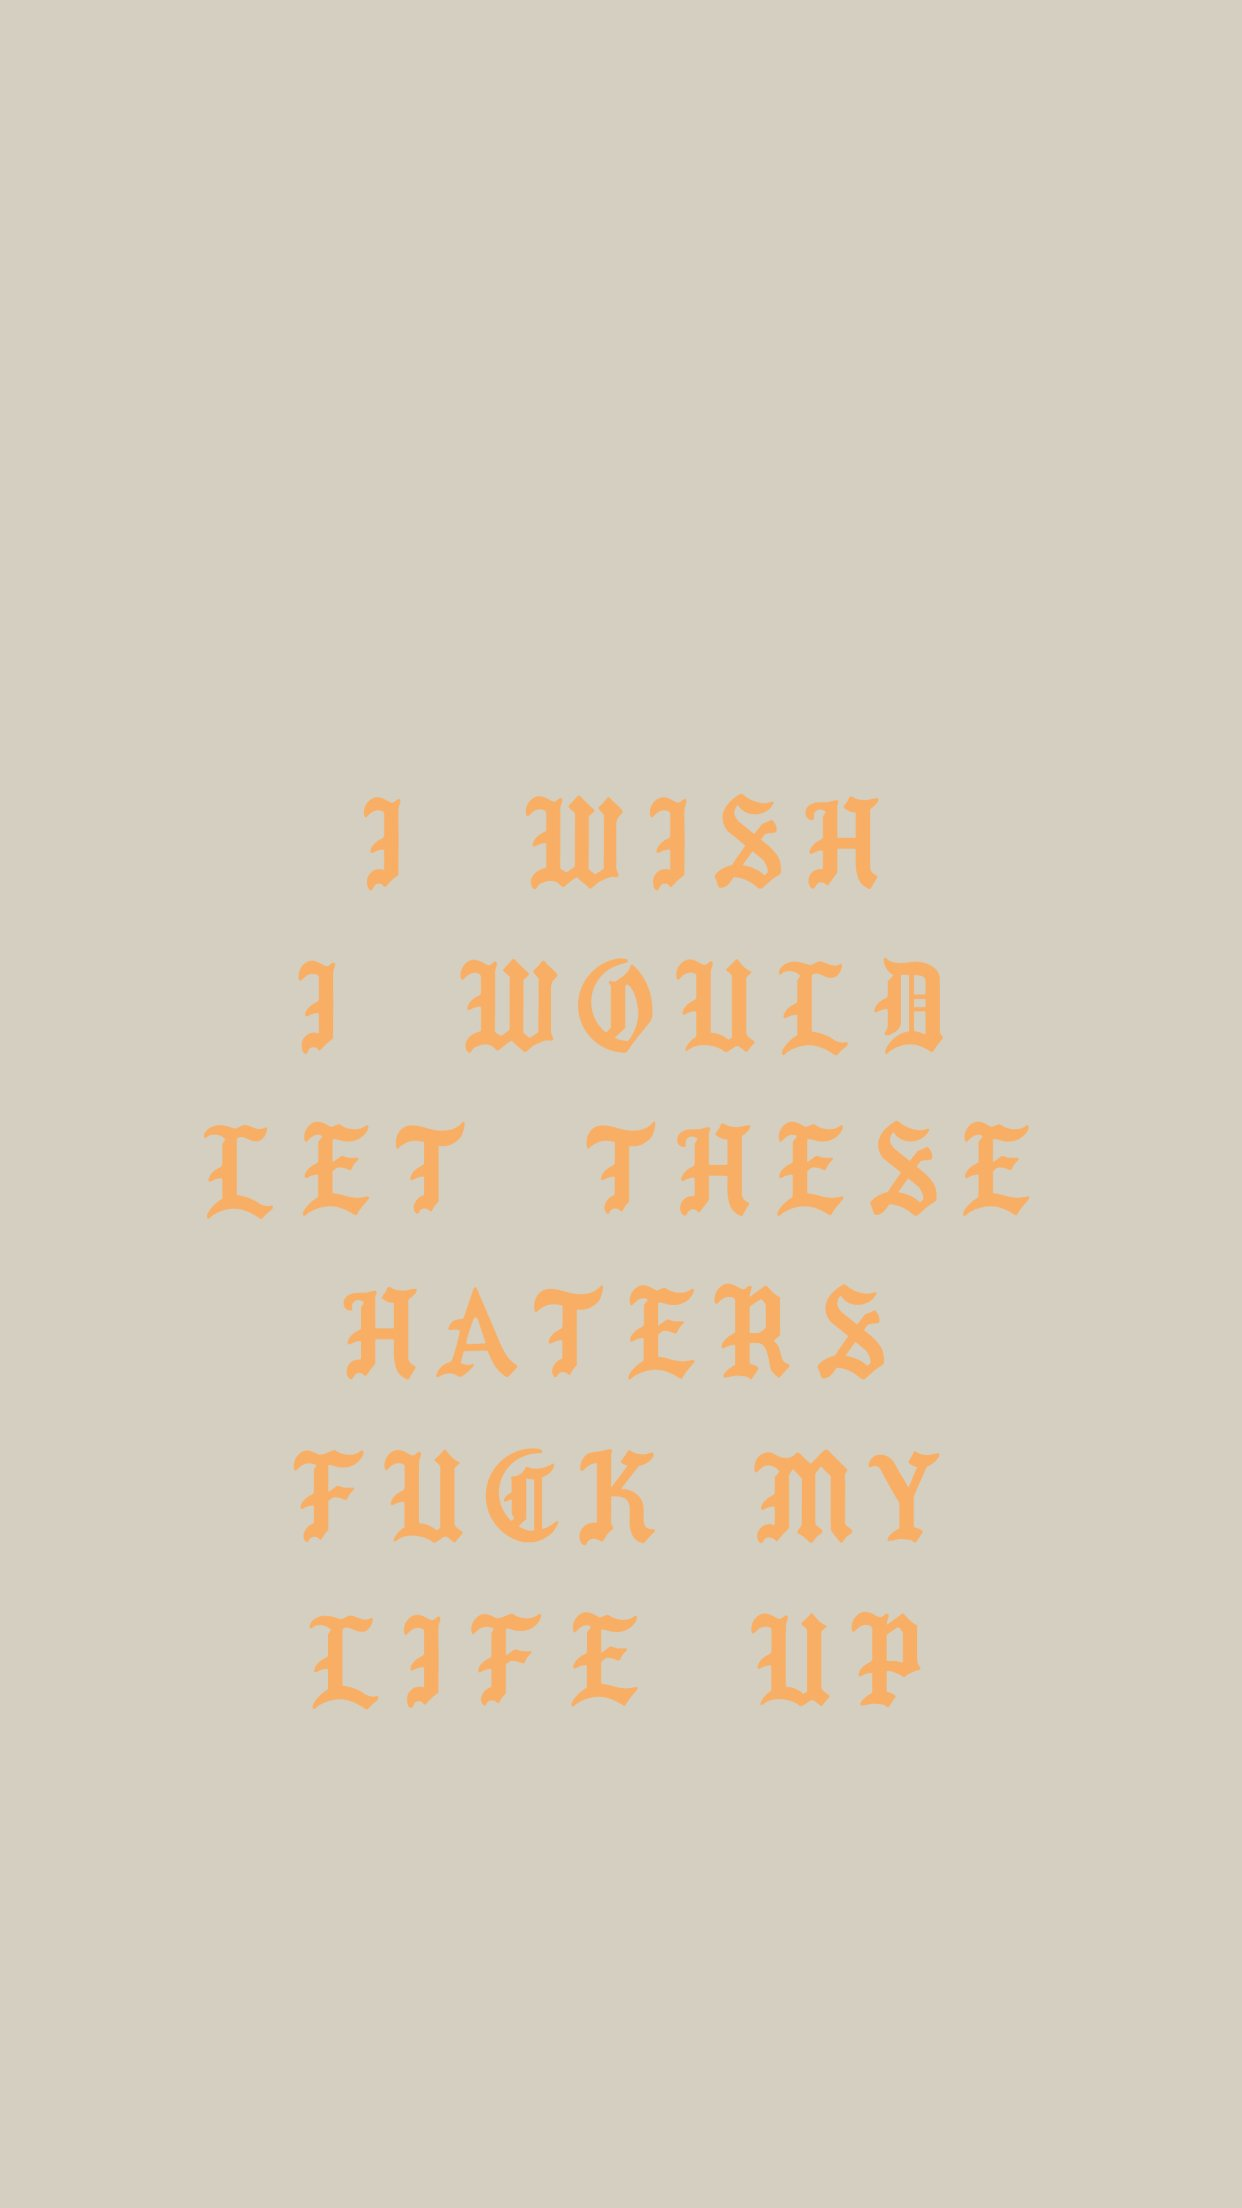 The Life Of Pablo Wallpaper Posted By Michelle Sellers